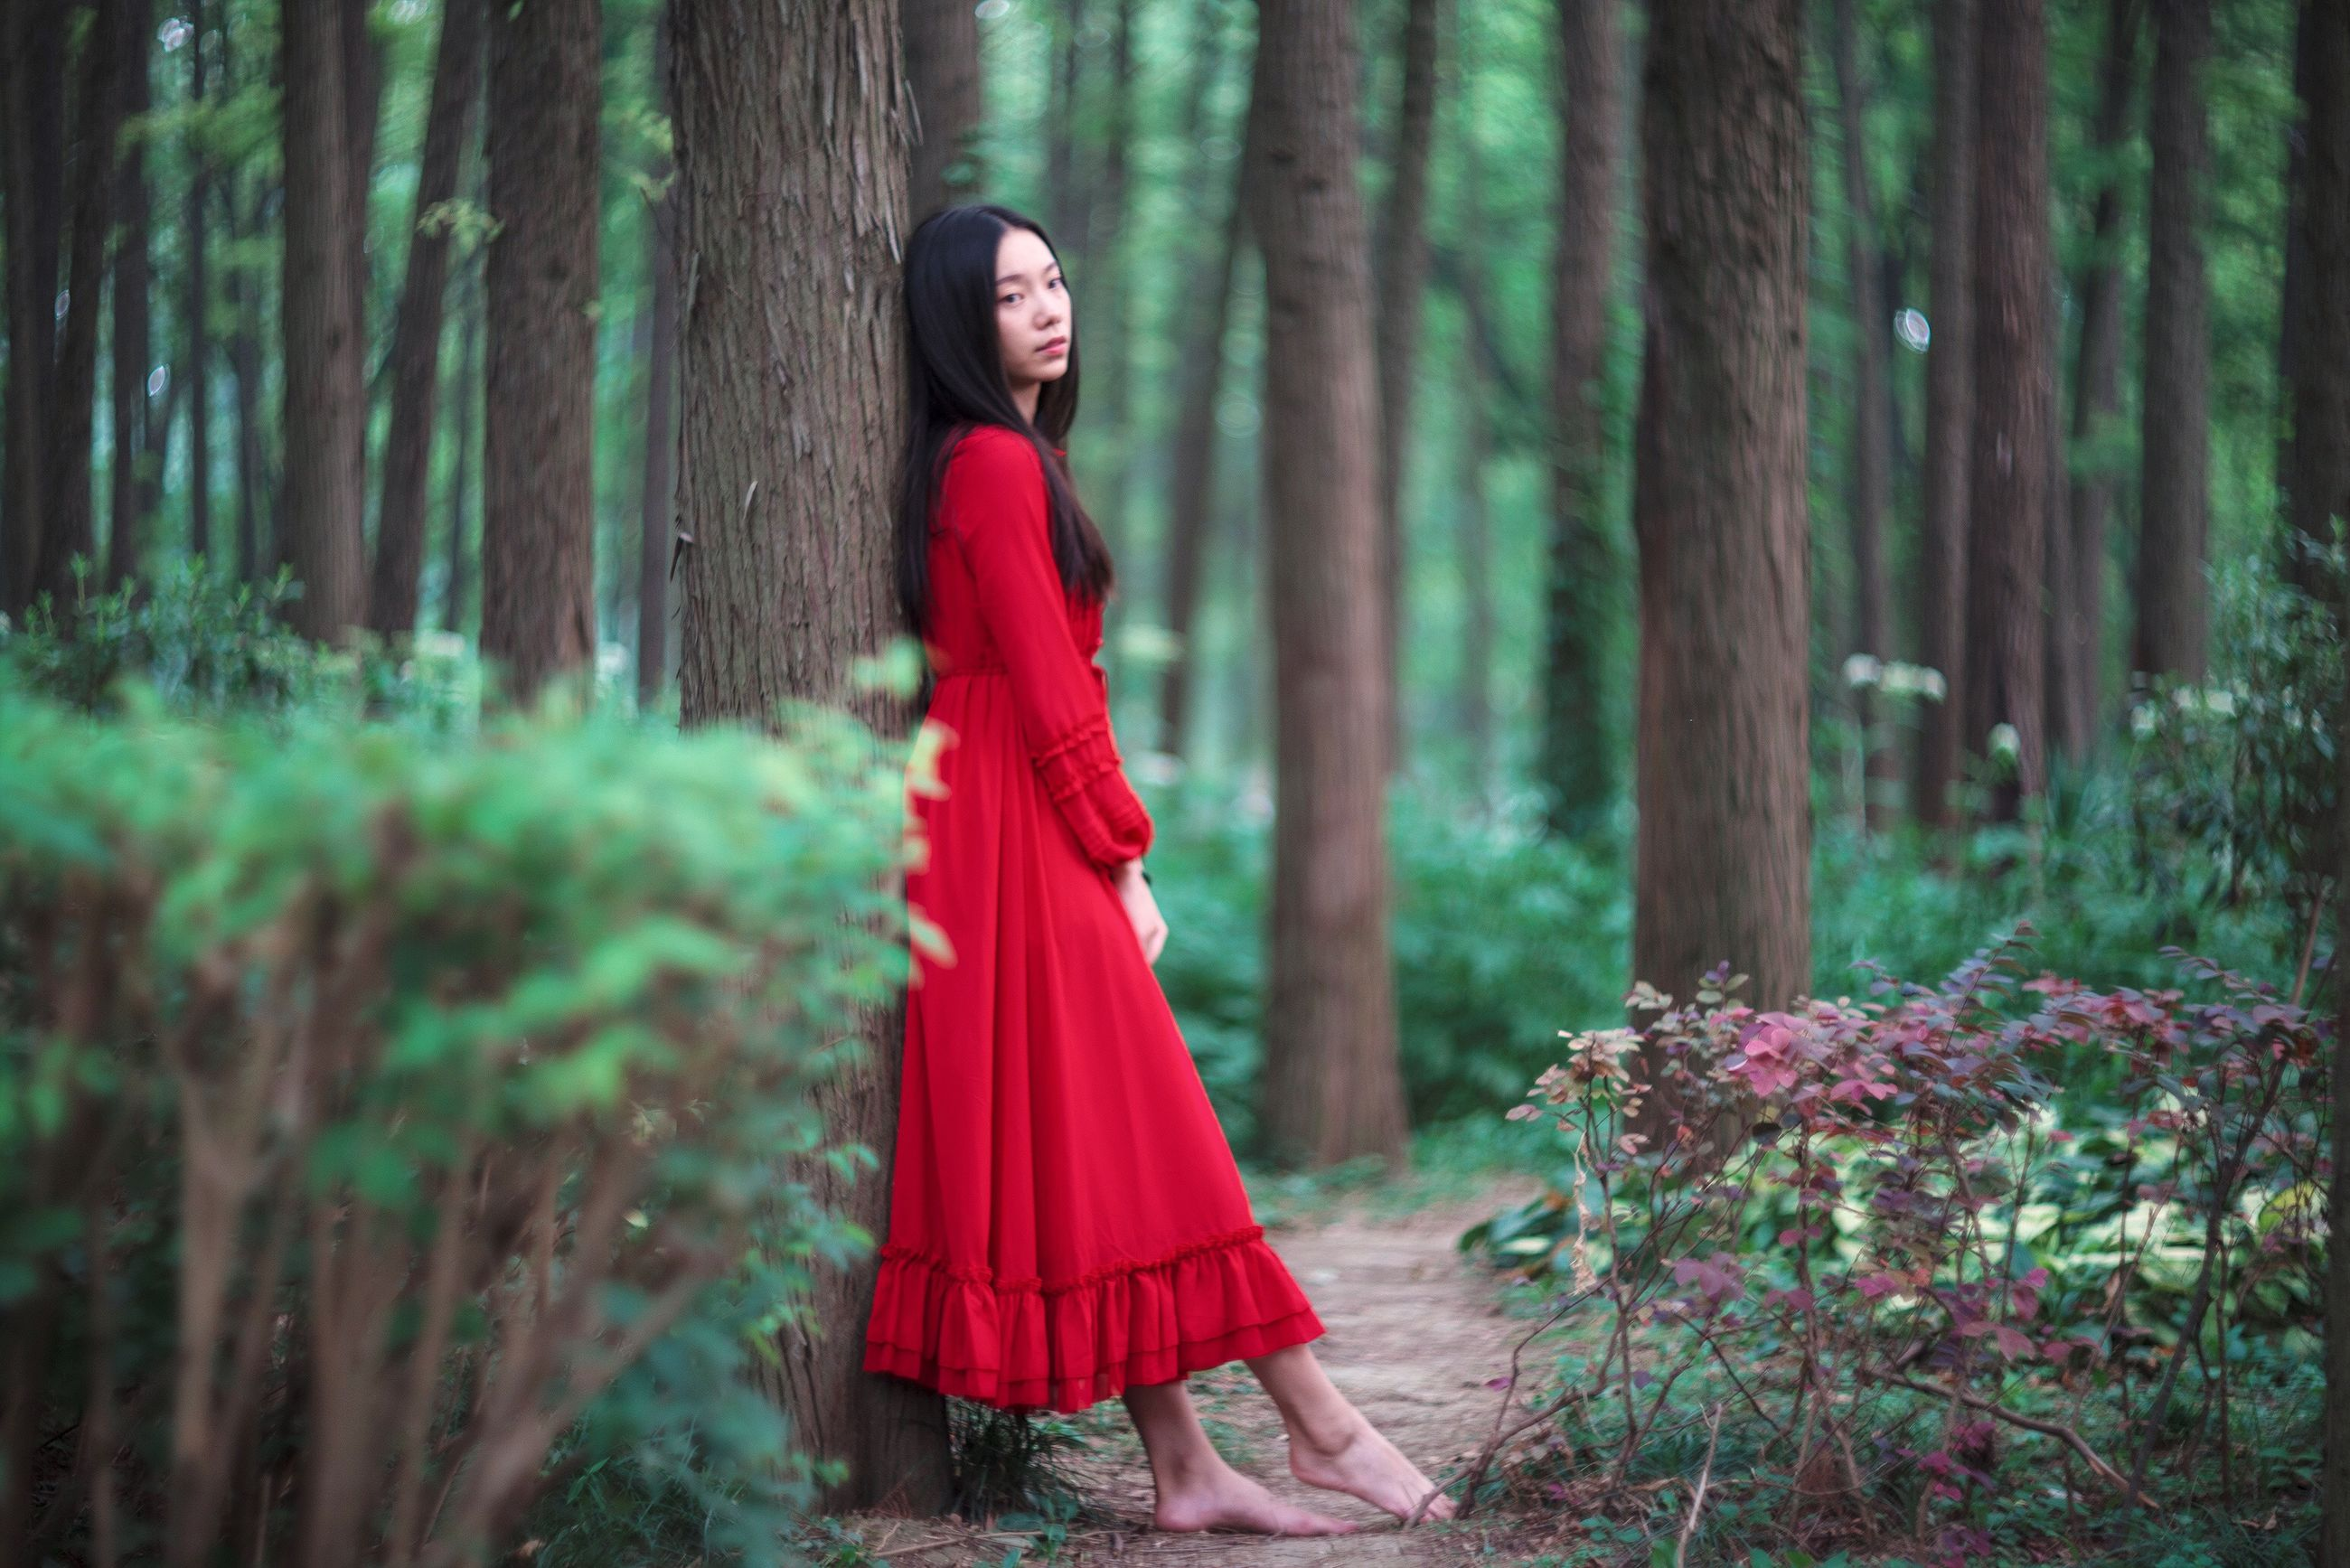 red, young adult, forest, lifestyles, tree, young women, standing, casual clothing, front view, leisure activity, dress, long hair, tree trunk, person, three quarter length, focus on foreground